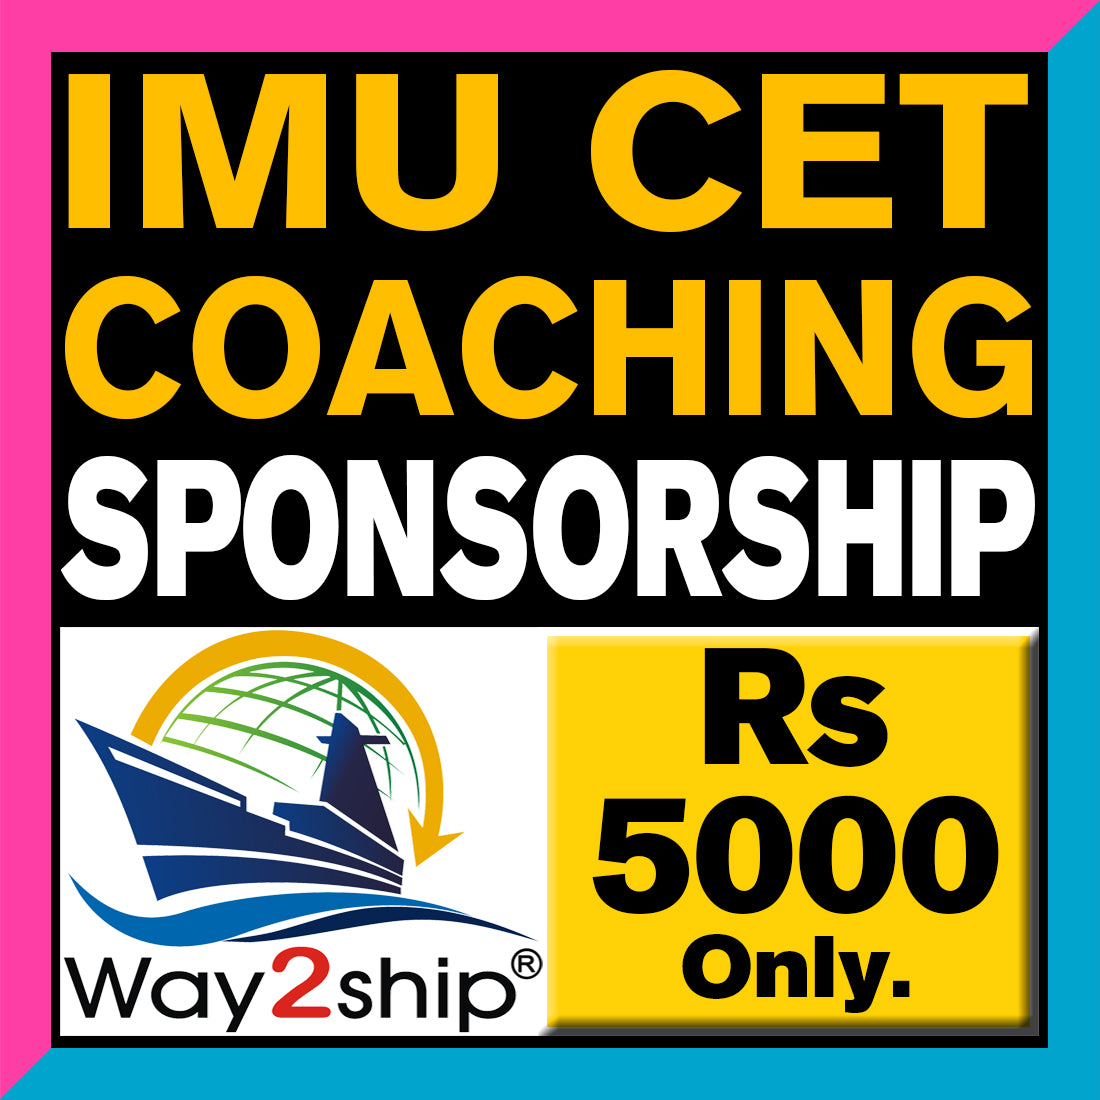 IMUCET Sponsorship Classes 2021